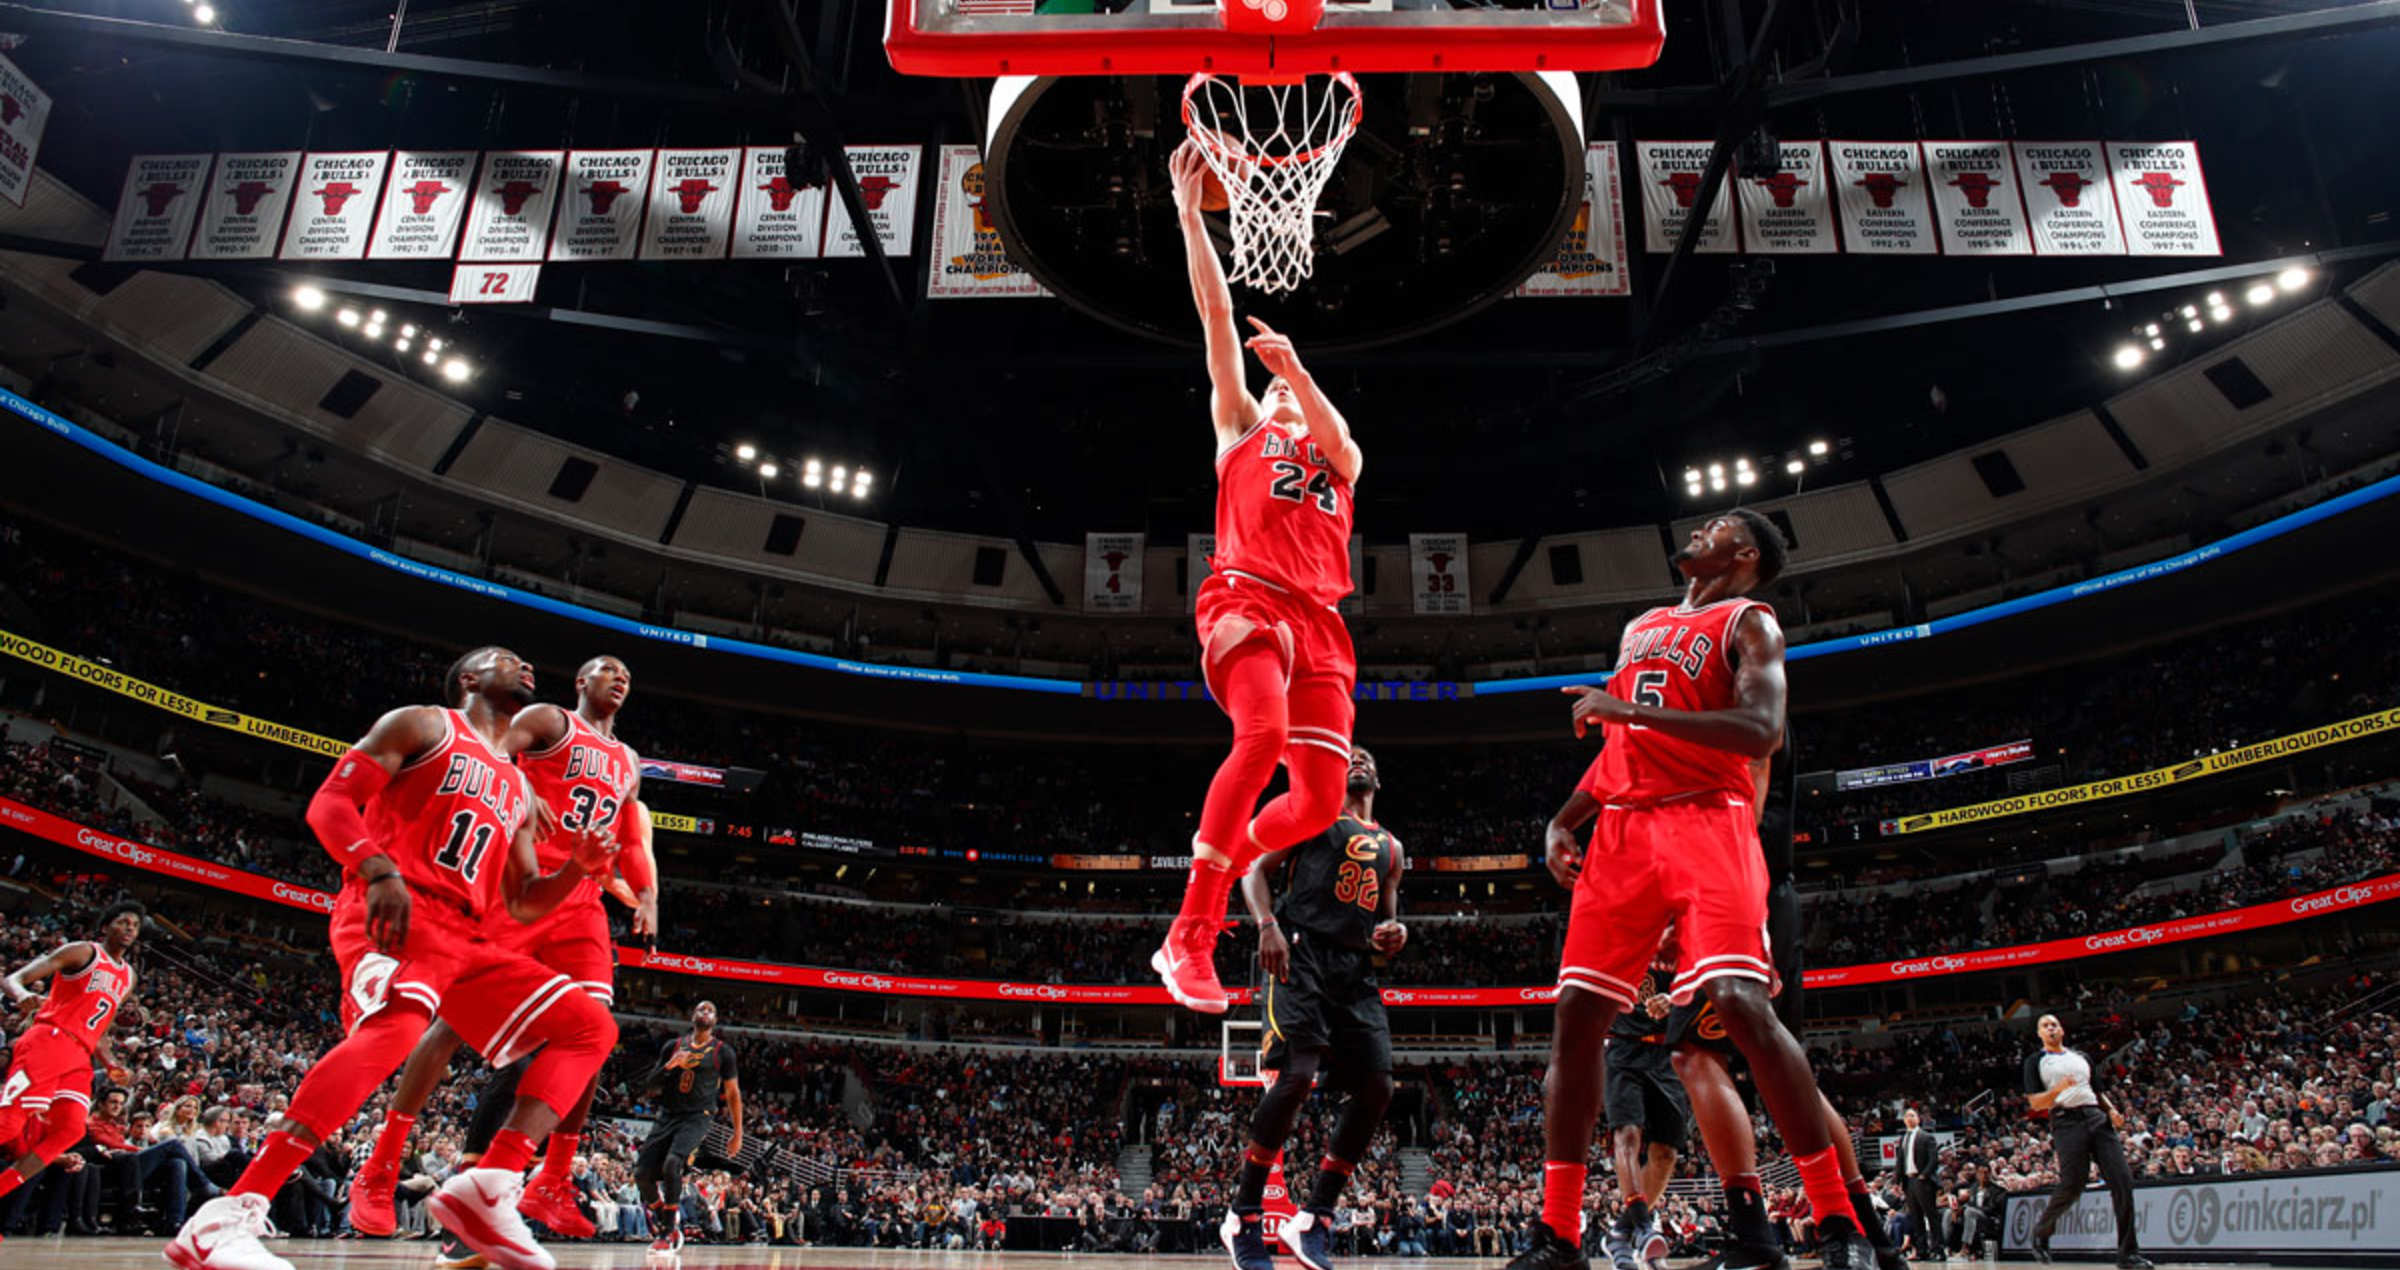 Lauri Markkanen #24 of the Chicago Bulls dunks against the Cleveland Cavaliers on December 4, 2017 at the United Center in Chicago, Illinois.